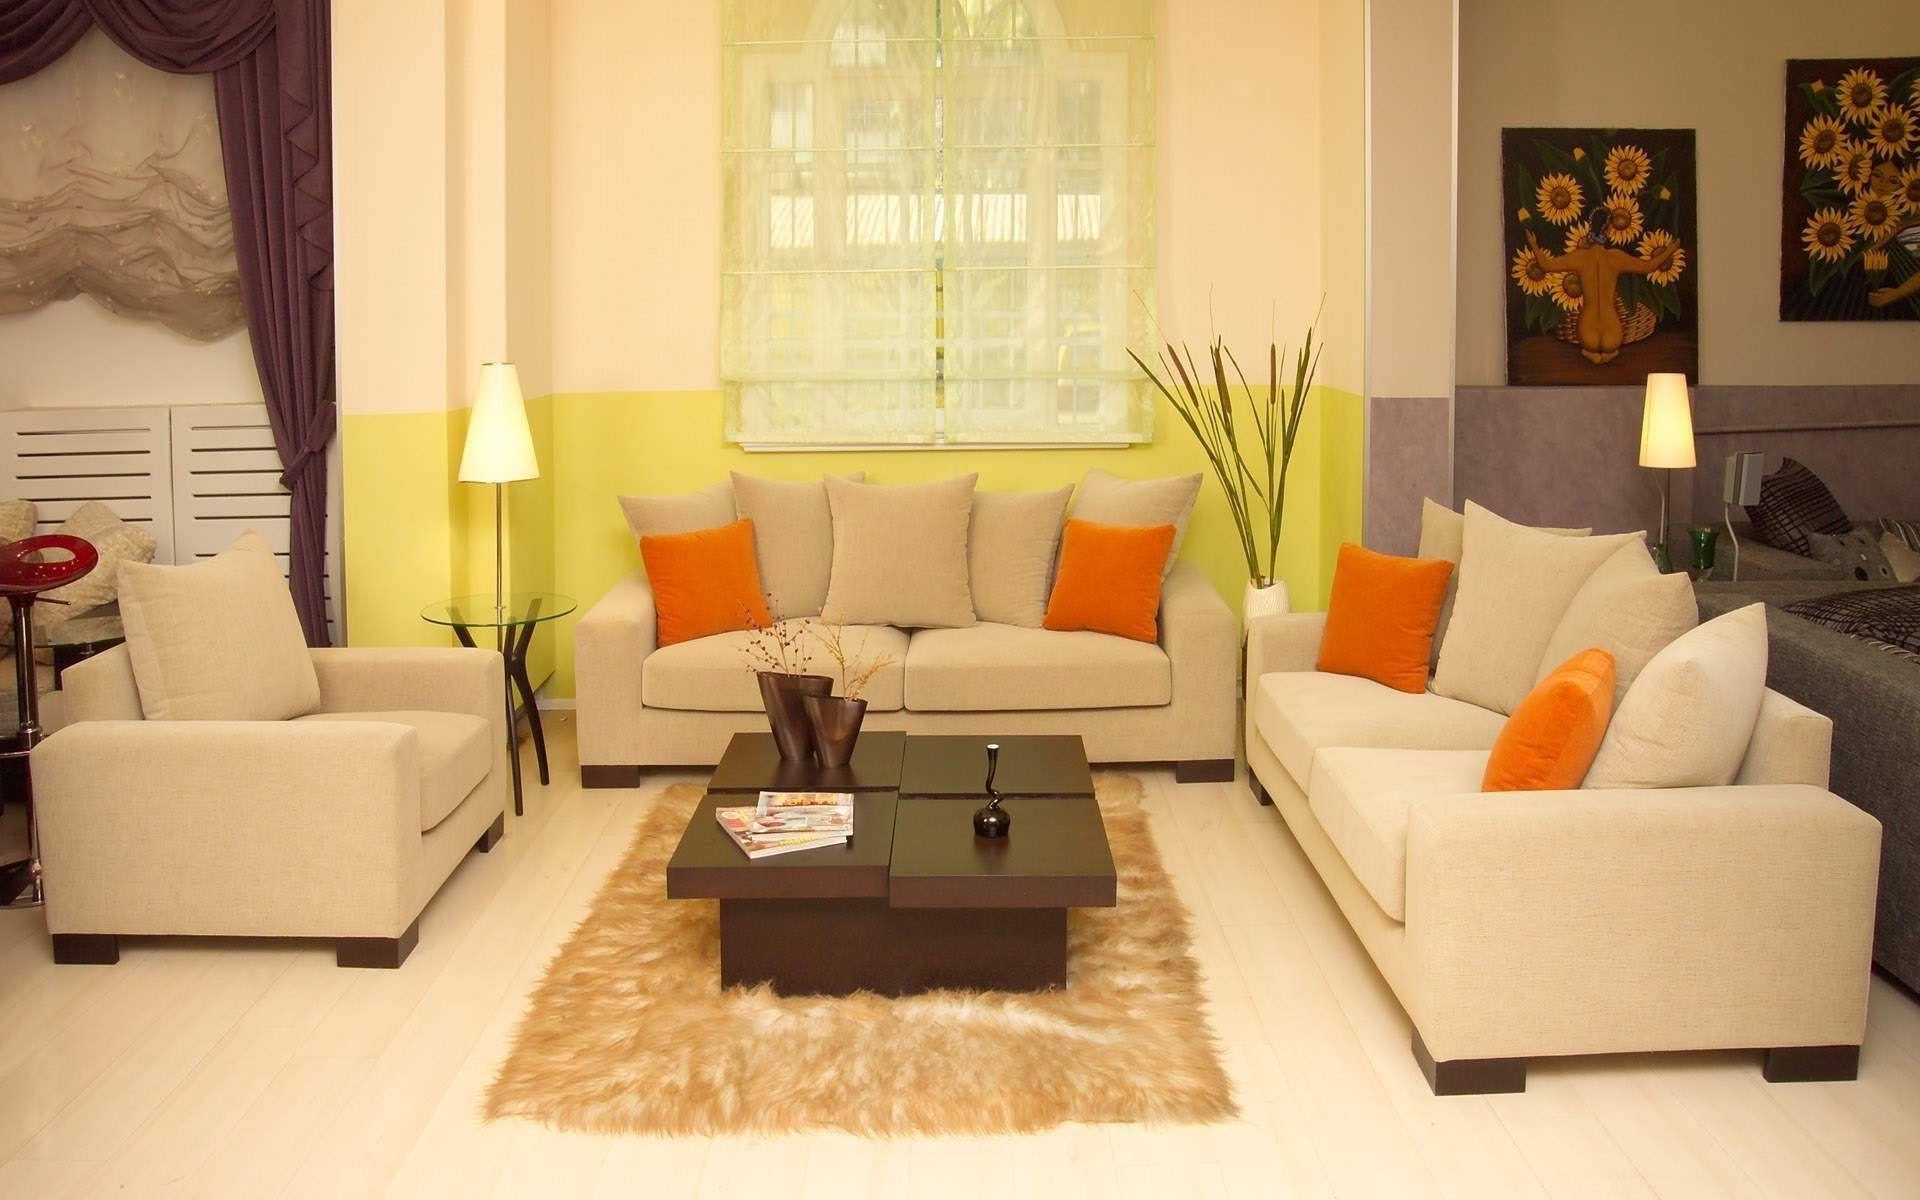 Cream Colored Sofas Intended For Popular Home Design : 12 Best Ideas Of Cream Colored Sofas Colored Sofa (View 15 of 20)